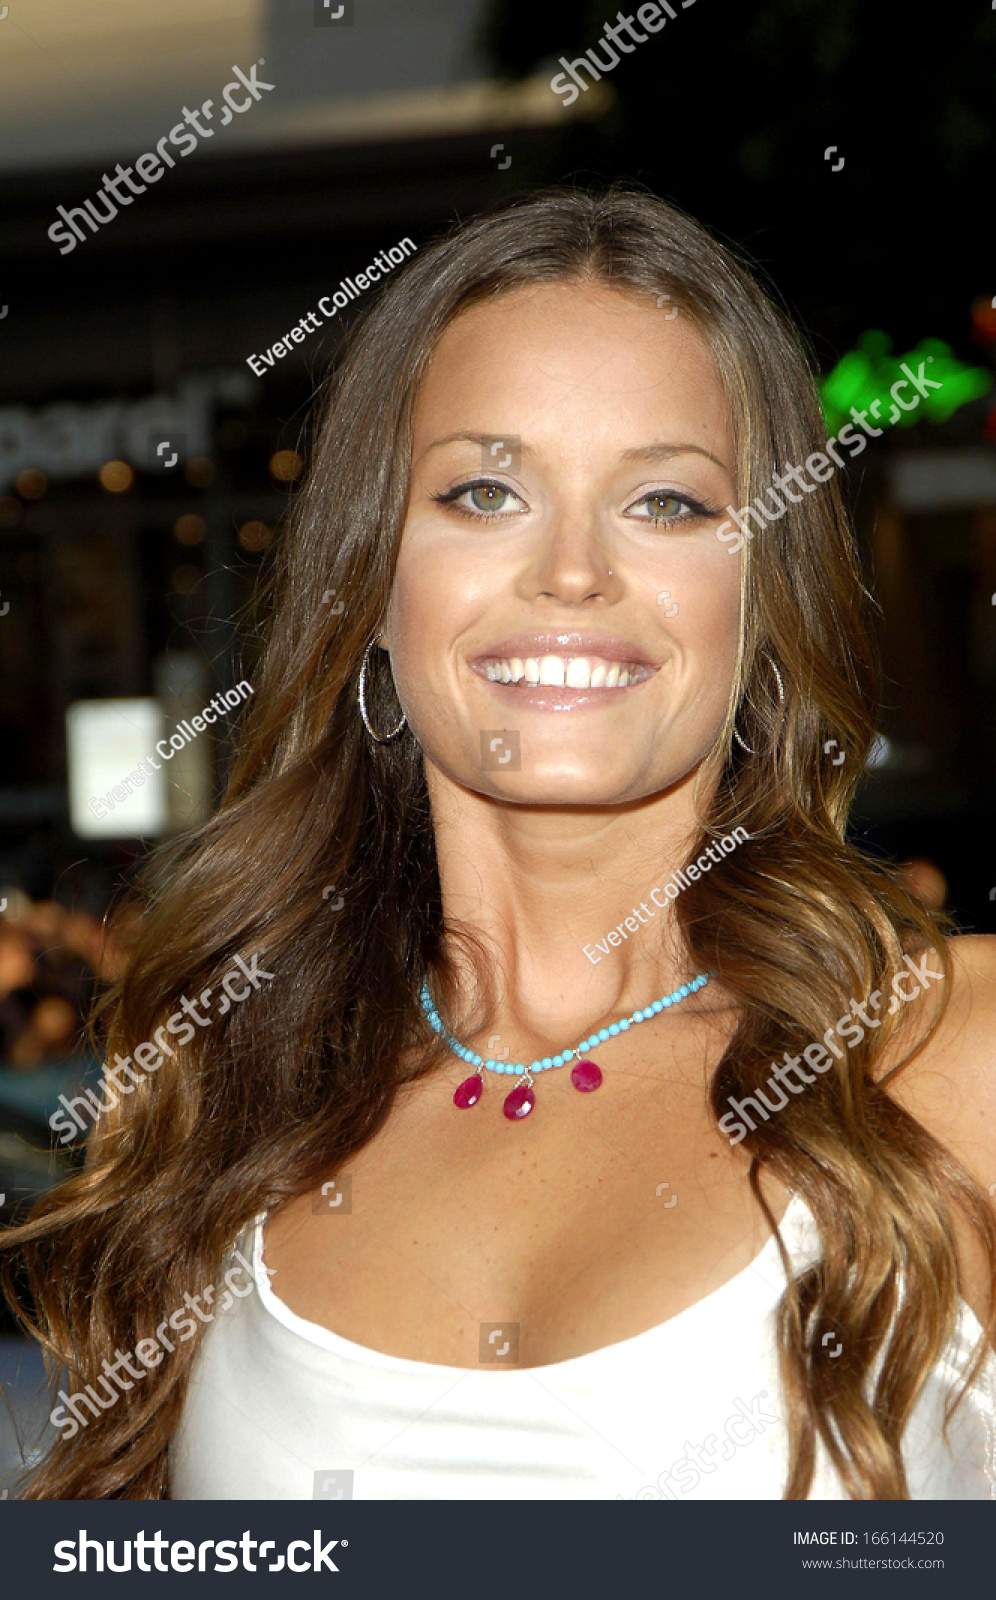 Jacqui Maxwell Jacqui Maxwell new pictures